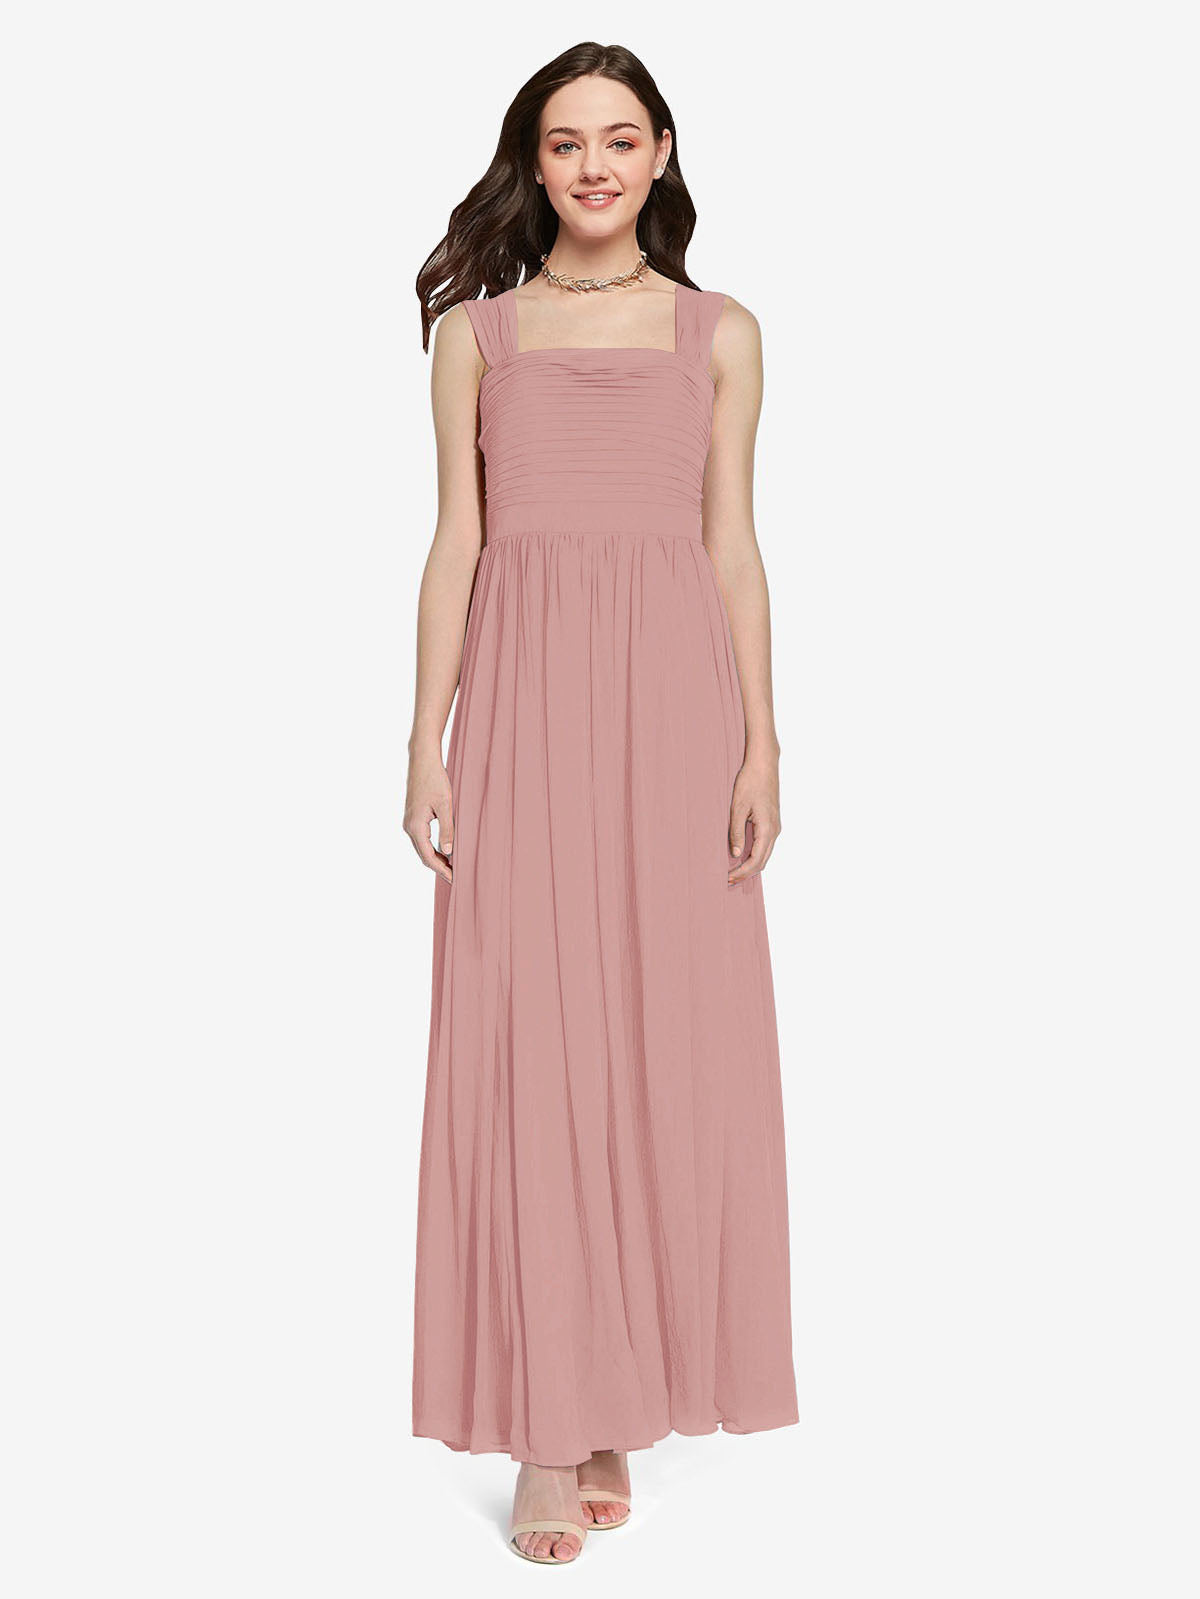 Long A-Line Square Sleeveless Dusty Pink Chiffon Bridesmaid Dress Aldridge